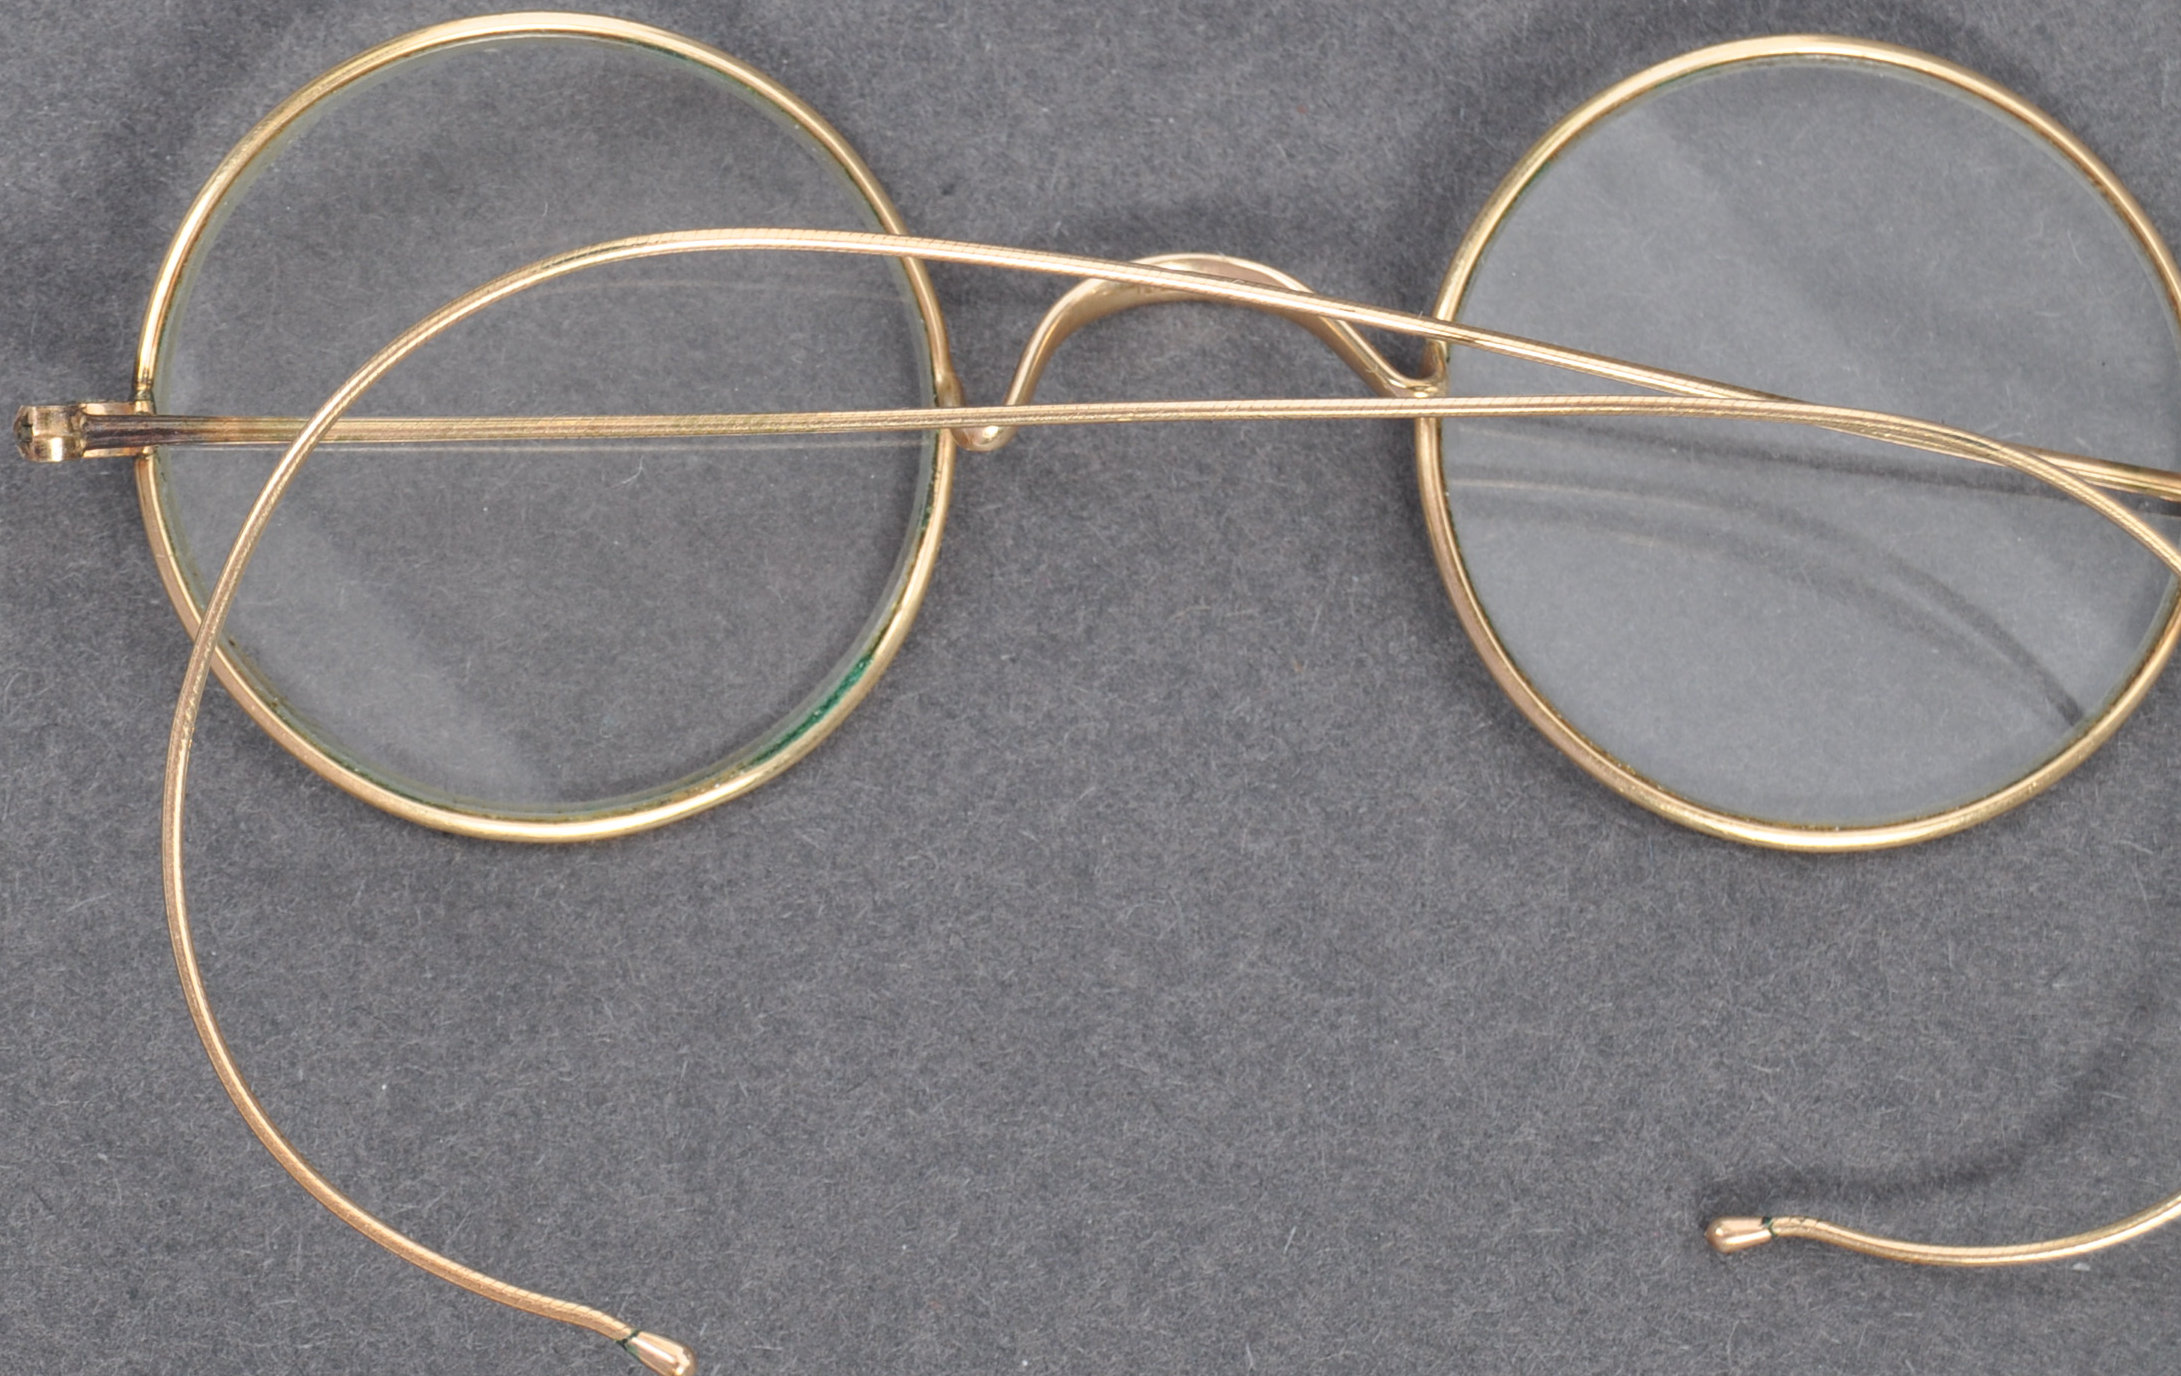 PAIR OF MATHATMA GANDHI'S PERSONAL SPECTACLES - Image 5 of 7